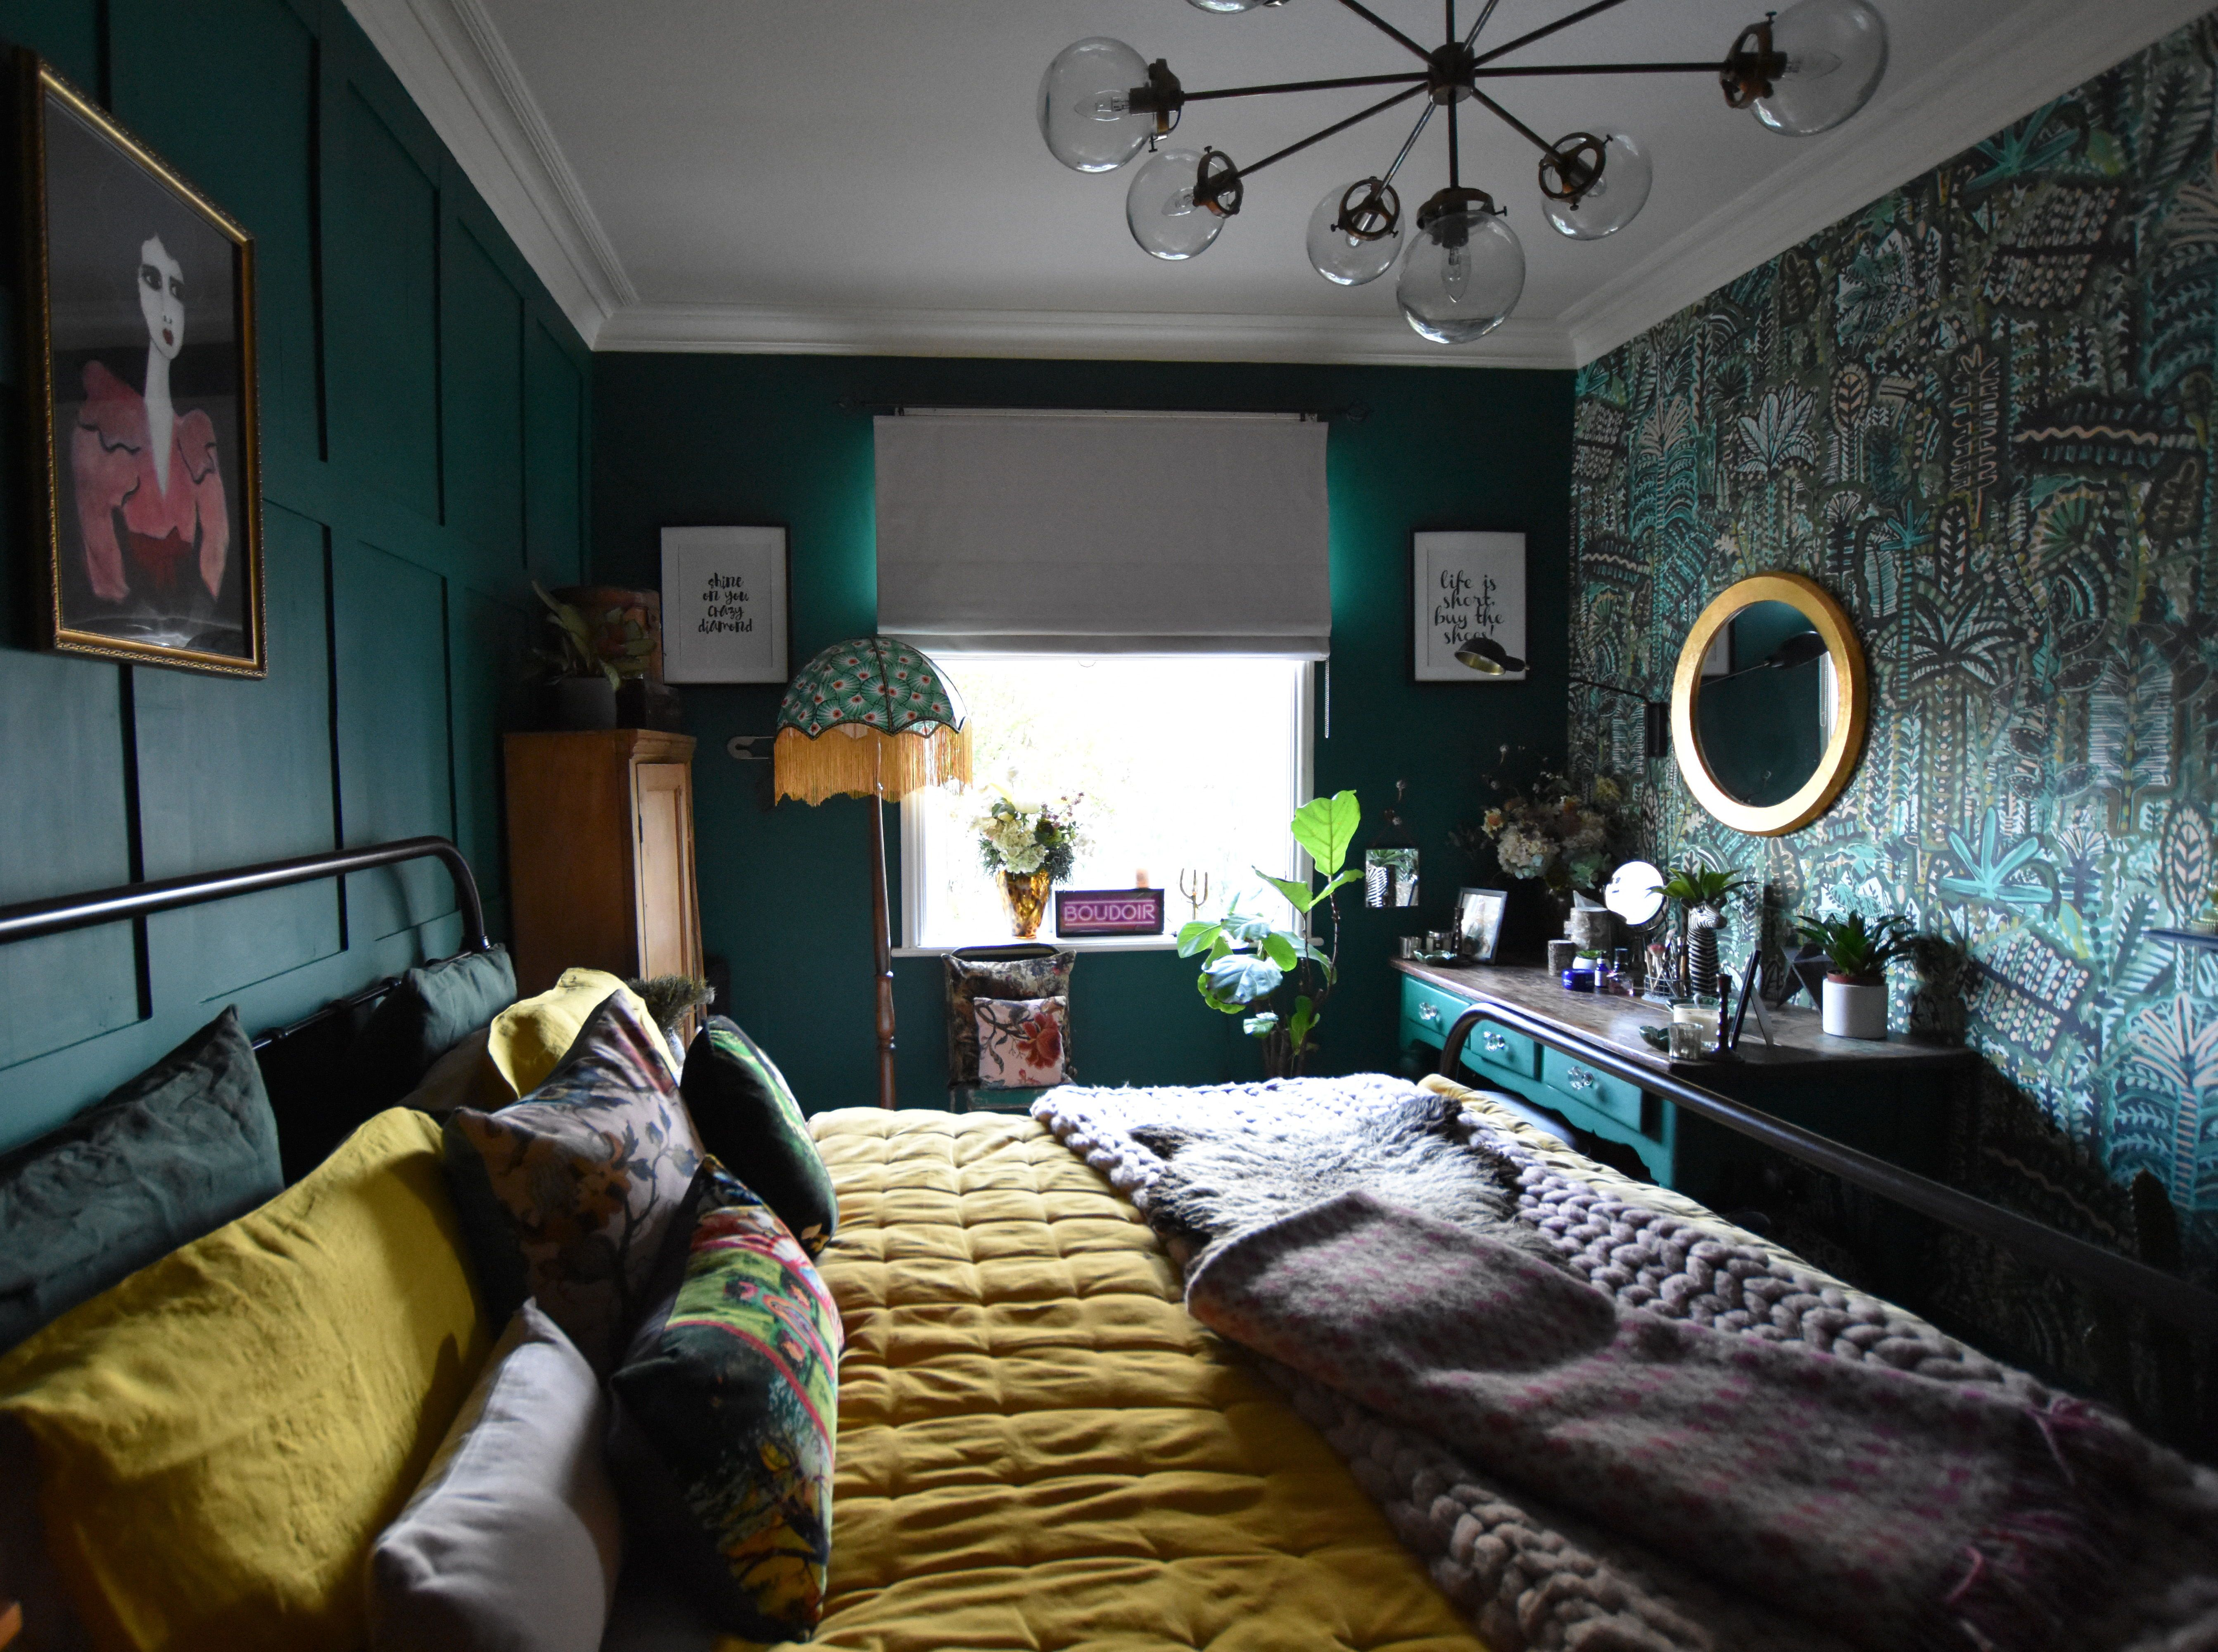 Maximalist Dark And Moody Green And Yellow Bedroom Yellow Bedroom Blue Green Bedrooms Eclectic Bedroom